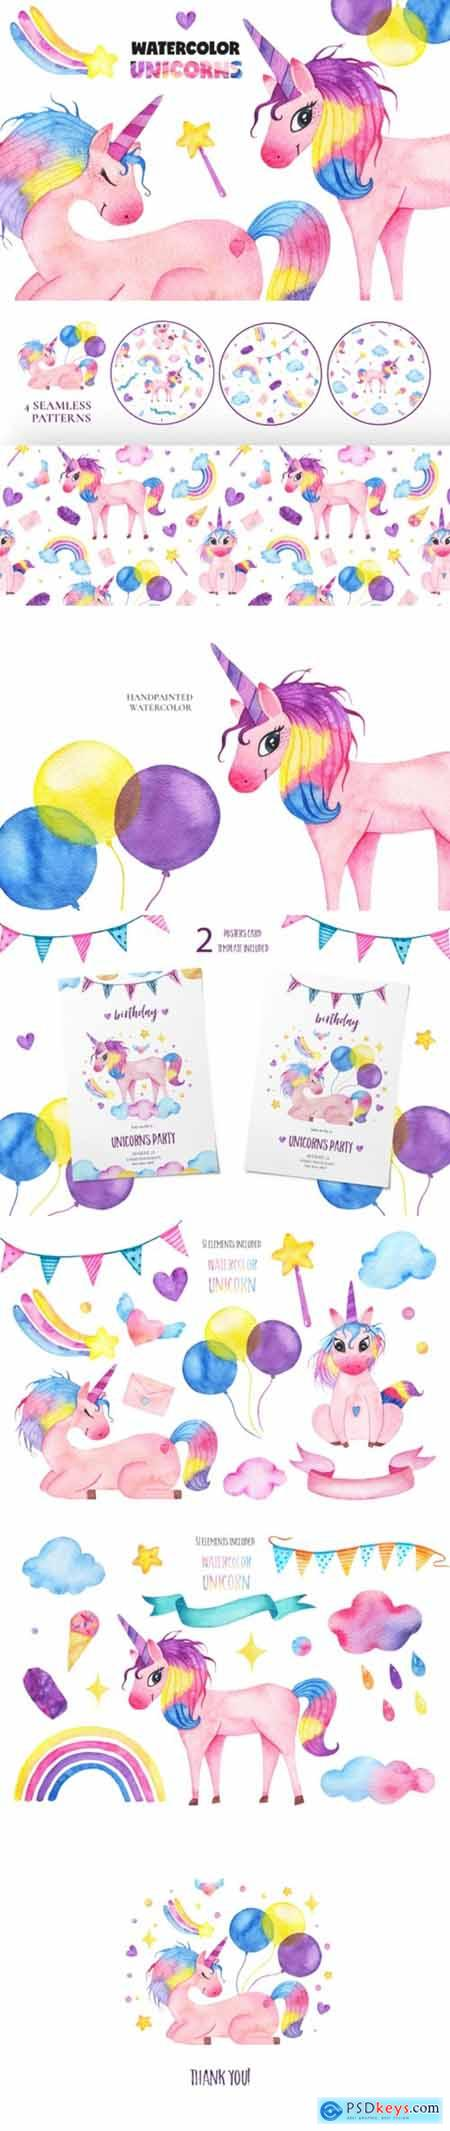 Cute Watercolor Unicorns Collection 2194062